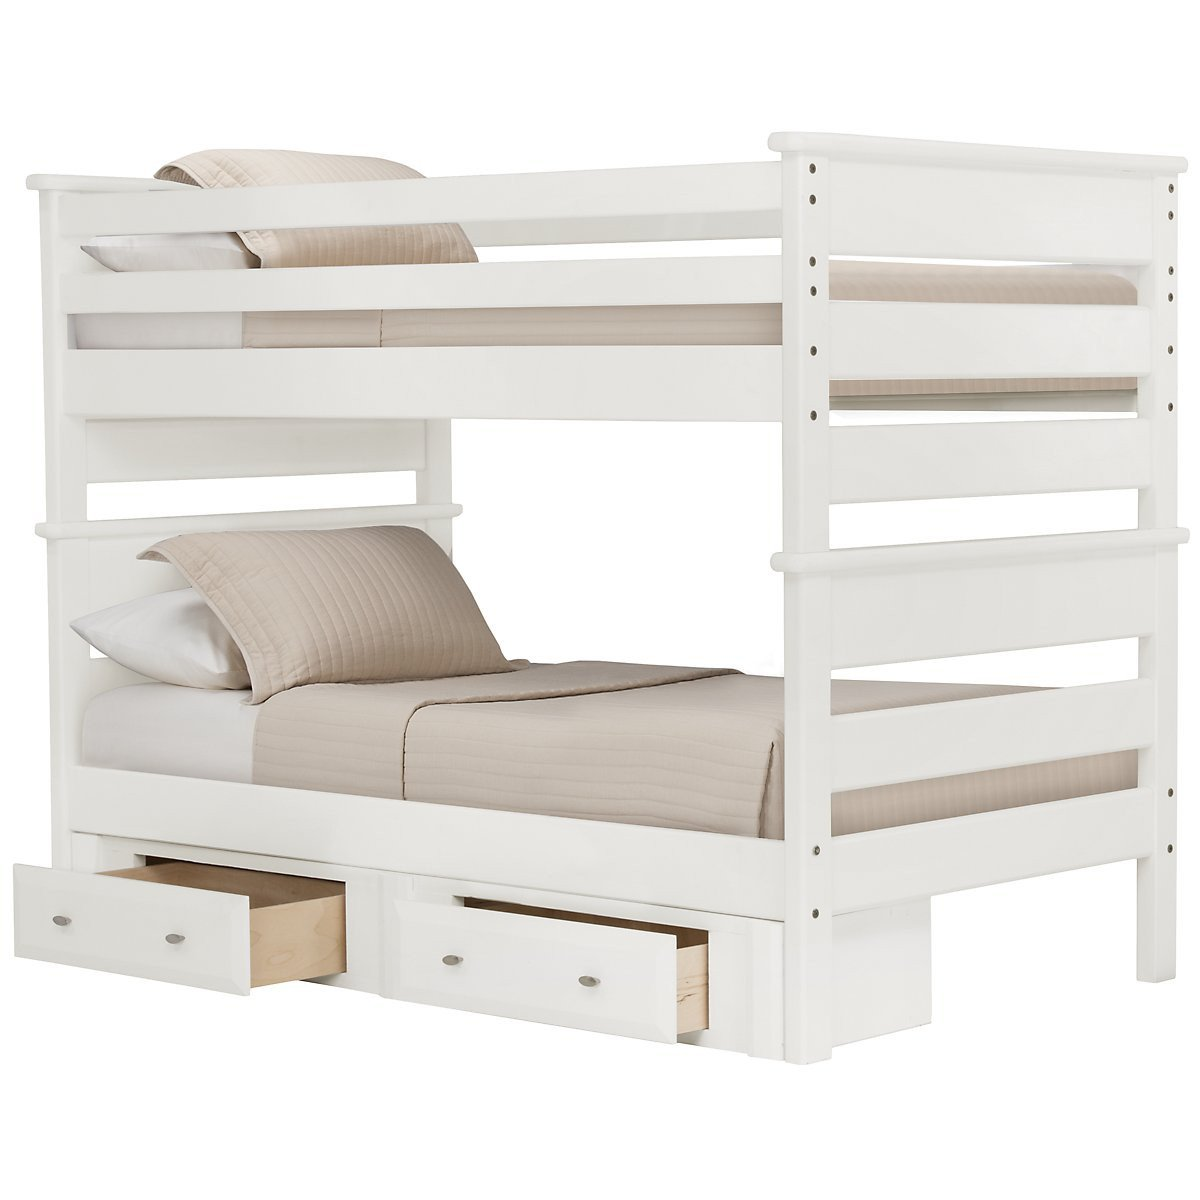 White Solid Wood Full Over Full Bunk Bed With Under Bed Storage